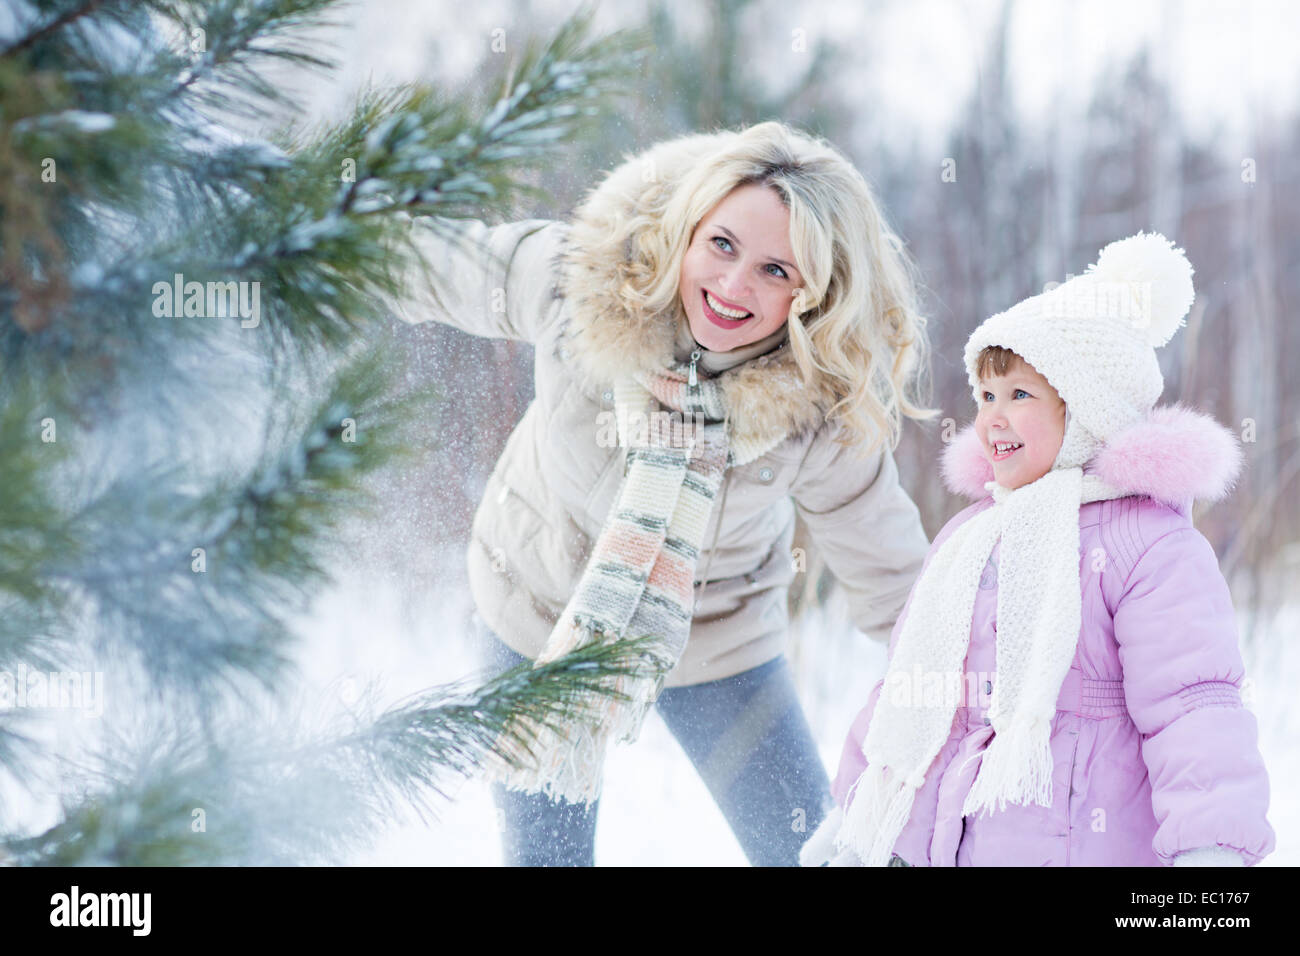 Happy parent and child playing with snow in winter outdoor - Stock Image